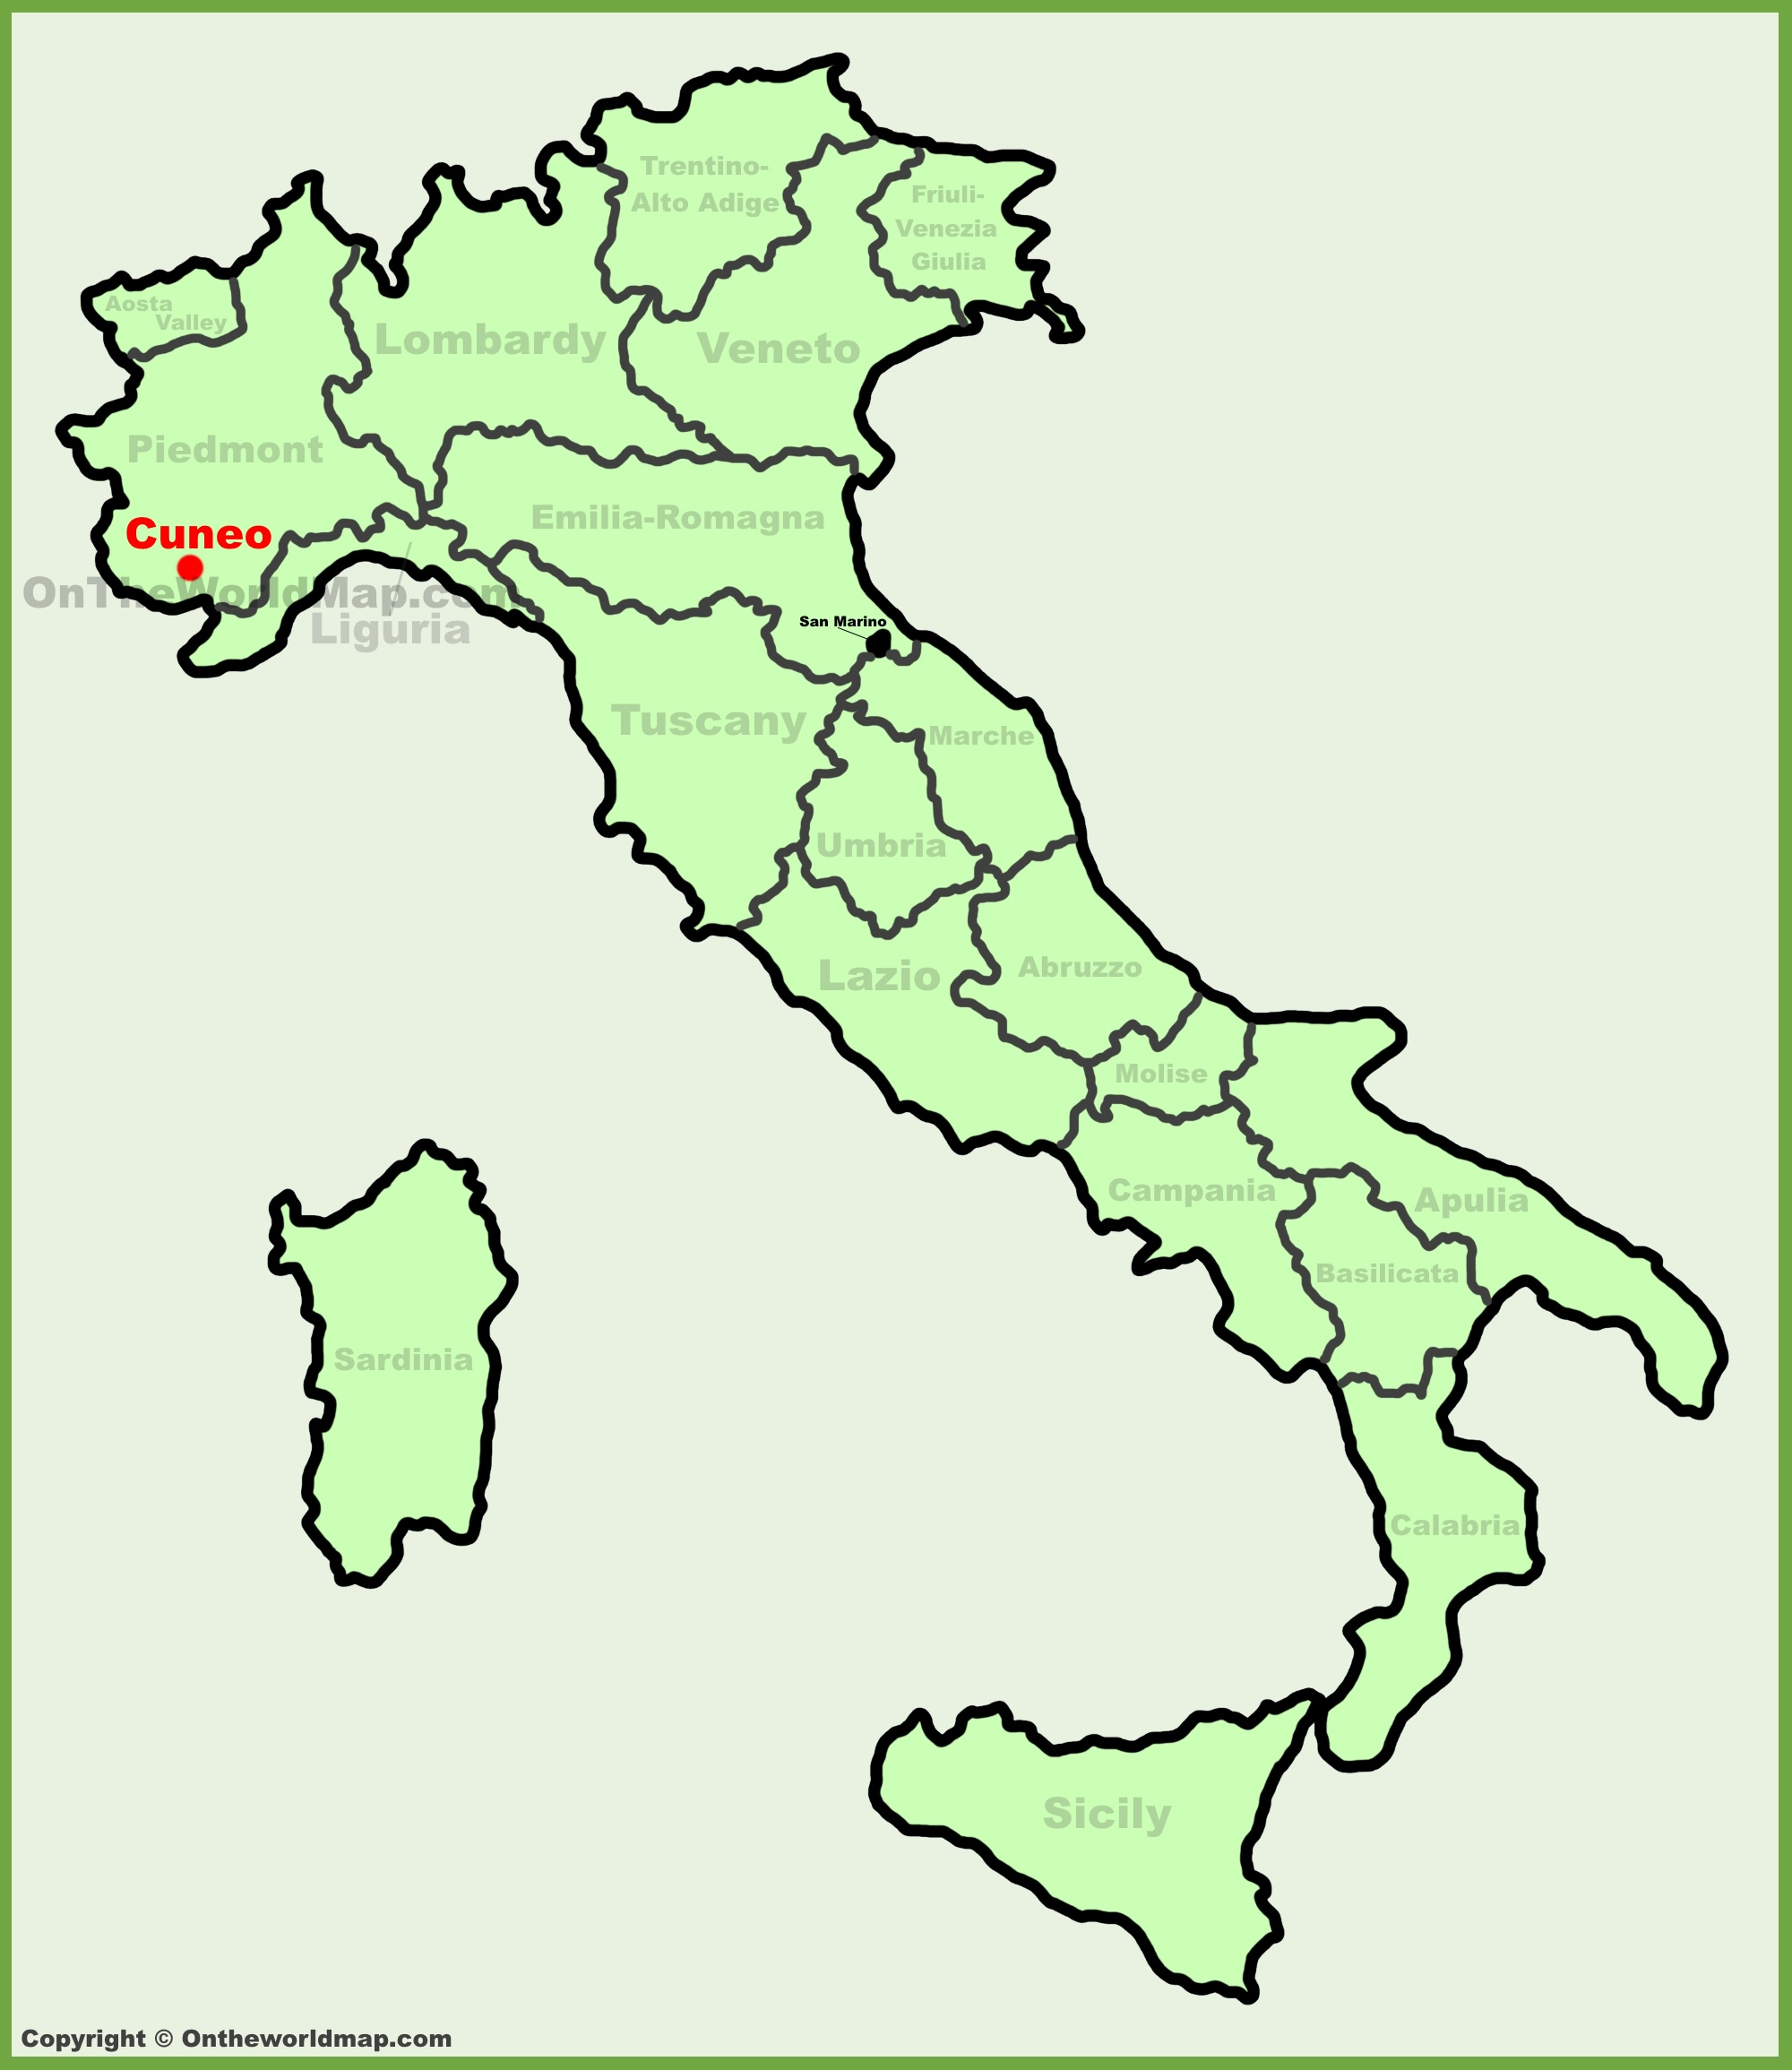 Cuneo location on the Italy map